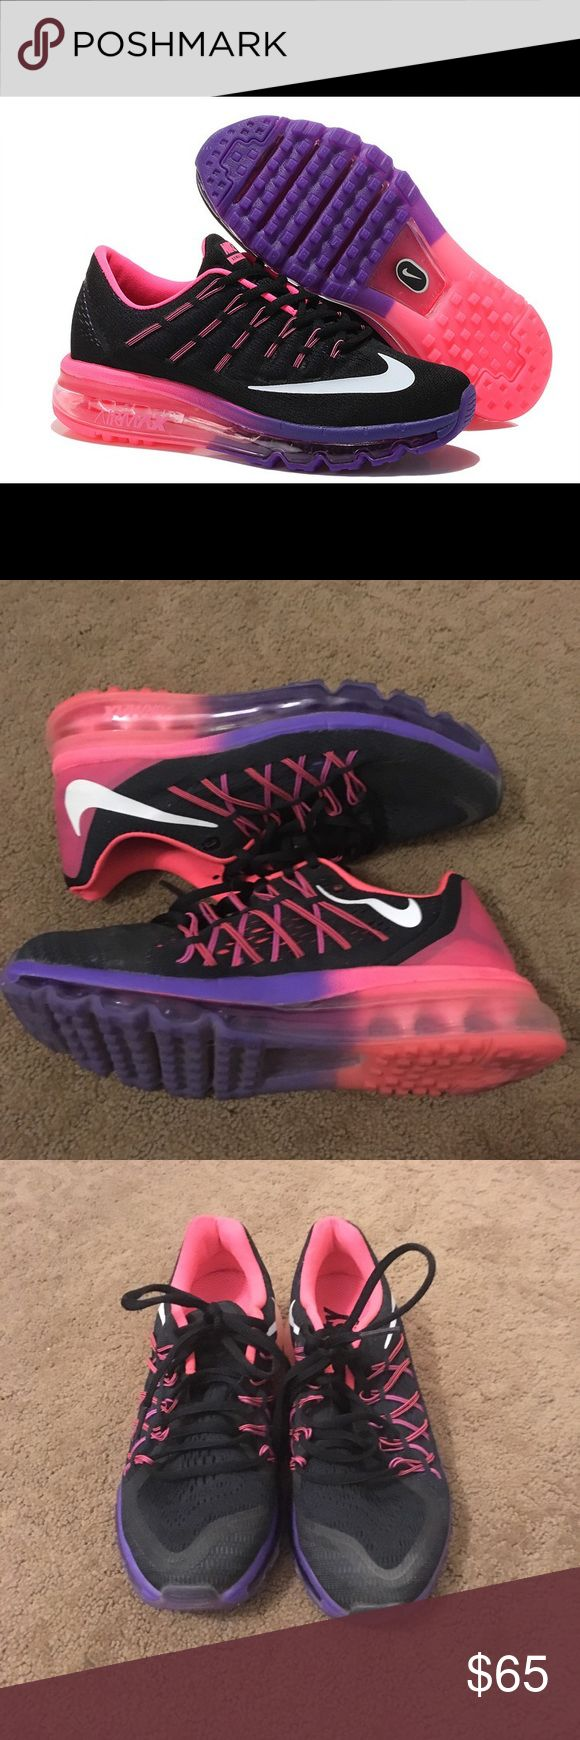 Nike Air Max 2016 Running Shoes Nike air max 2016 mesh running sneakers. Has an air cushion outsole design. Pink, purple, and black in color. Perfect for any work out! Great condition! Does not come with the bottom nike watch attachment seen in first picture. Nike Shoes Athletic Shoes